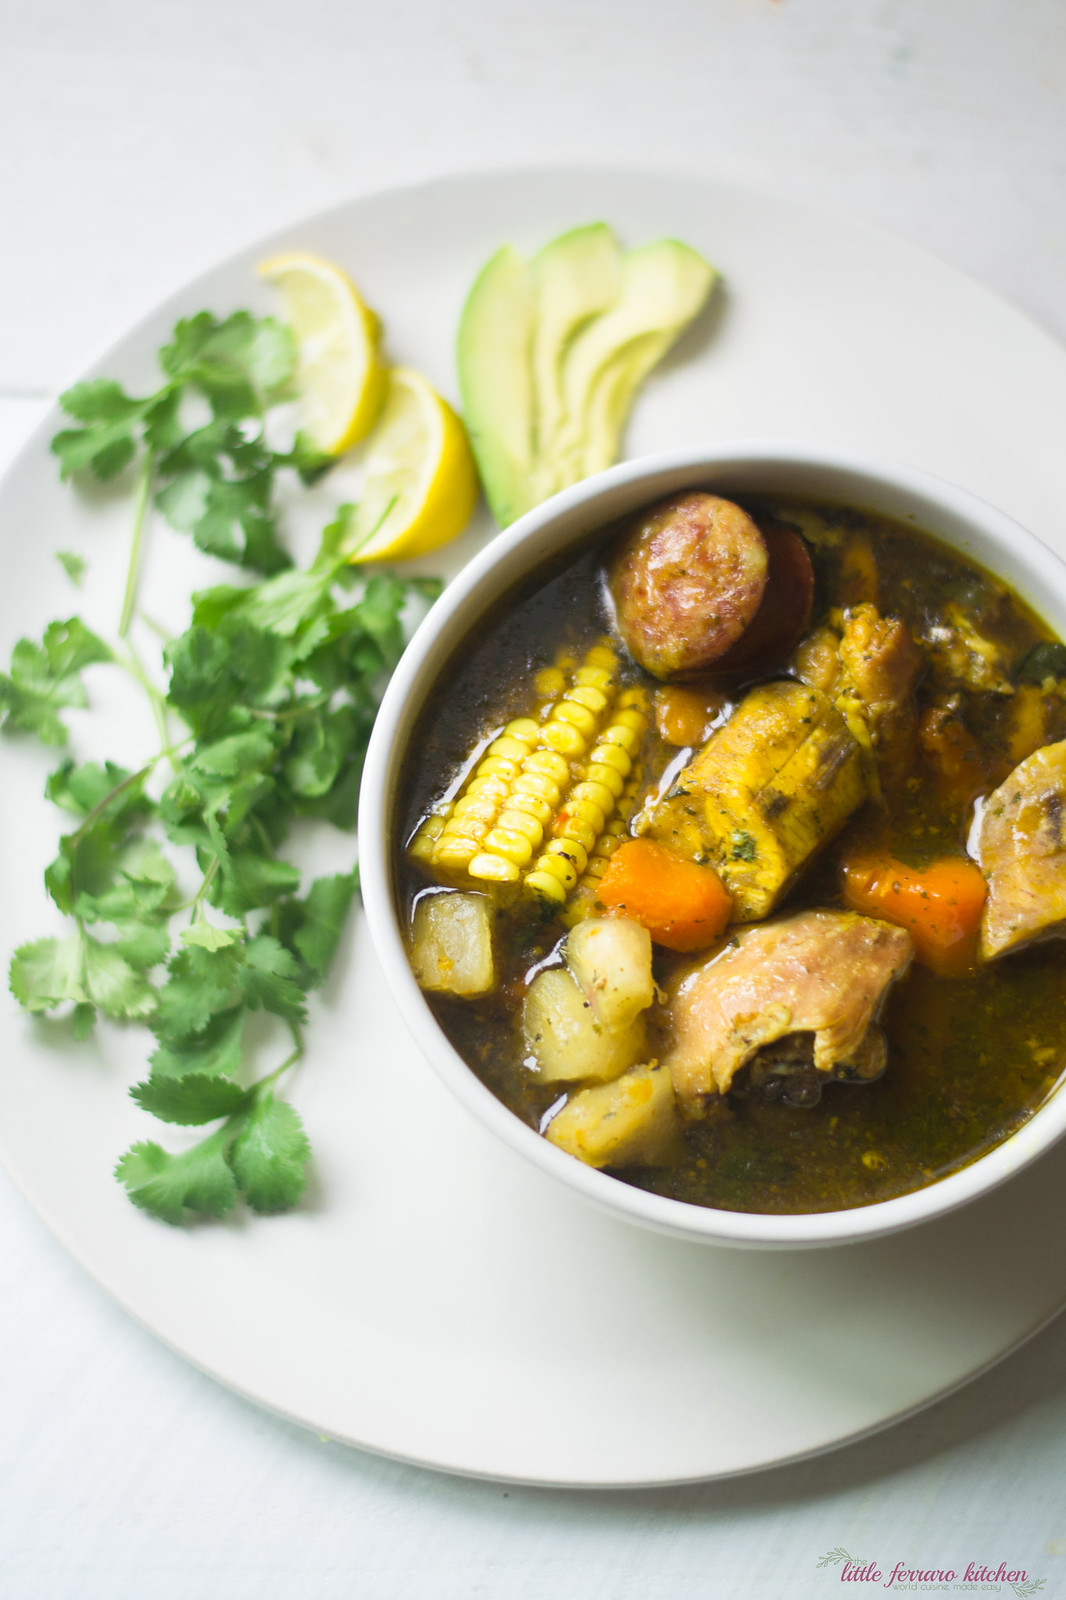 Dominican stew is full of layers of flavor with sazon, adobo and hearty vegetables of yucca and corn.